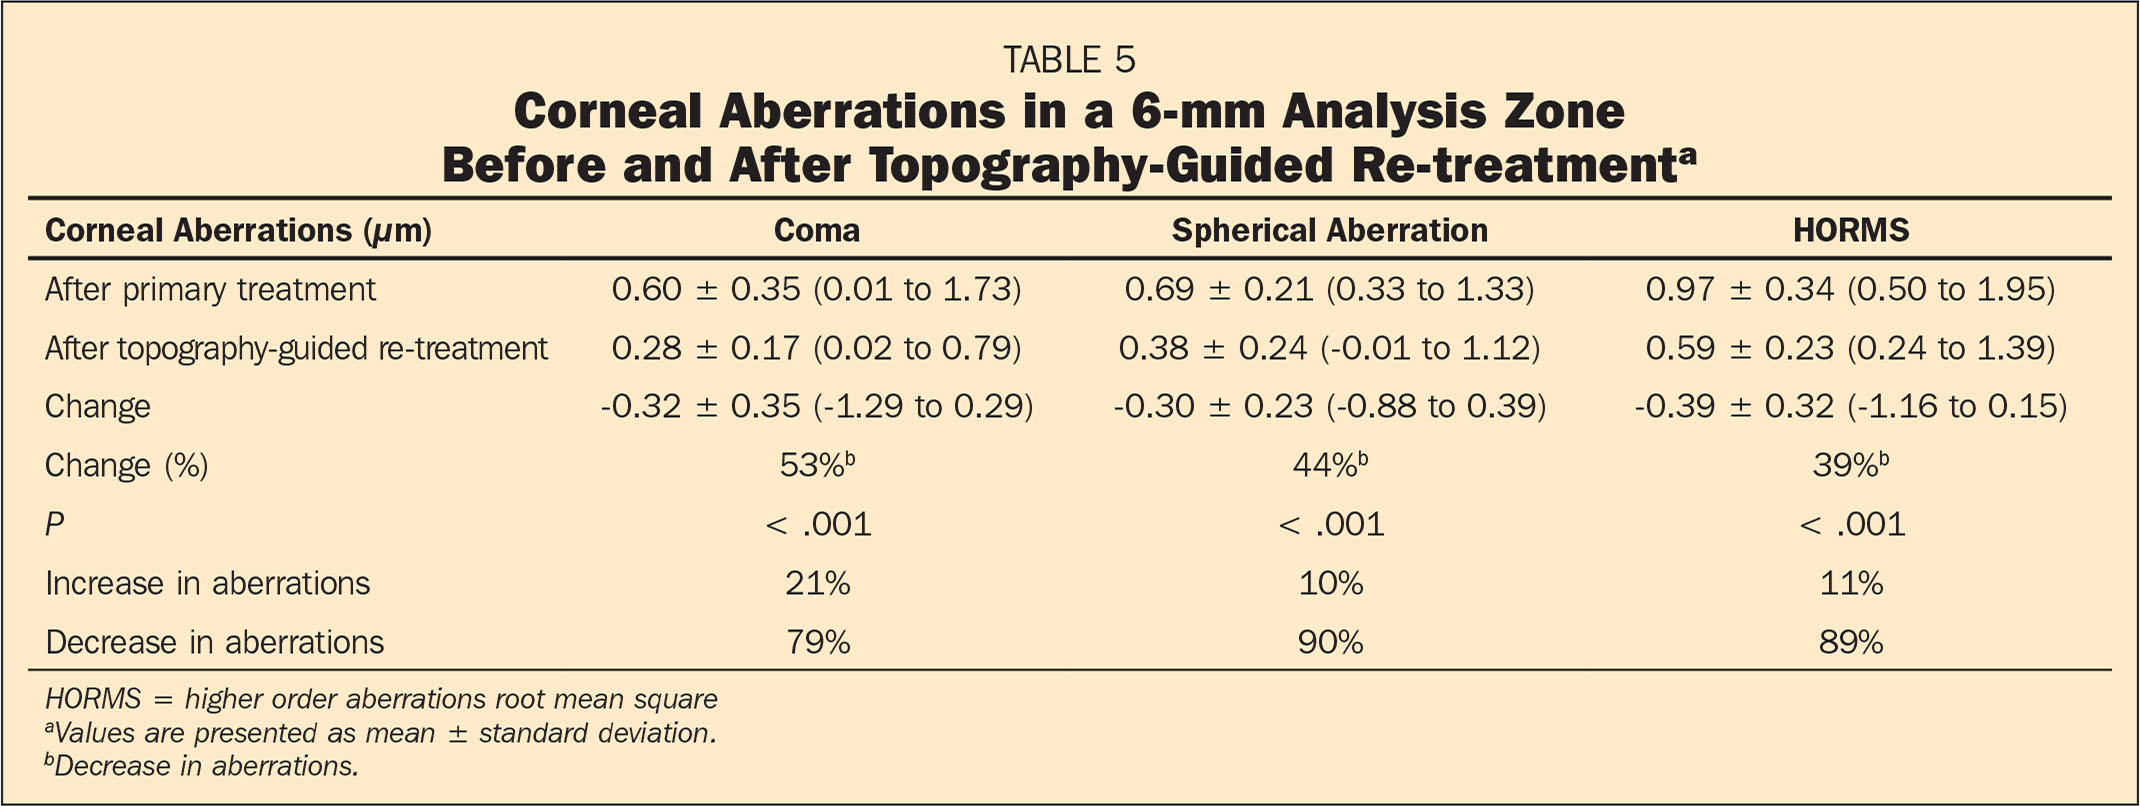 Corneal Aberrations in a 6-mm Analysis Zone Before and After Topography-Guided Re-treatmenta